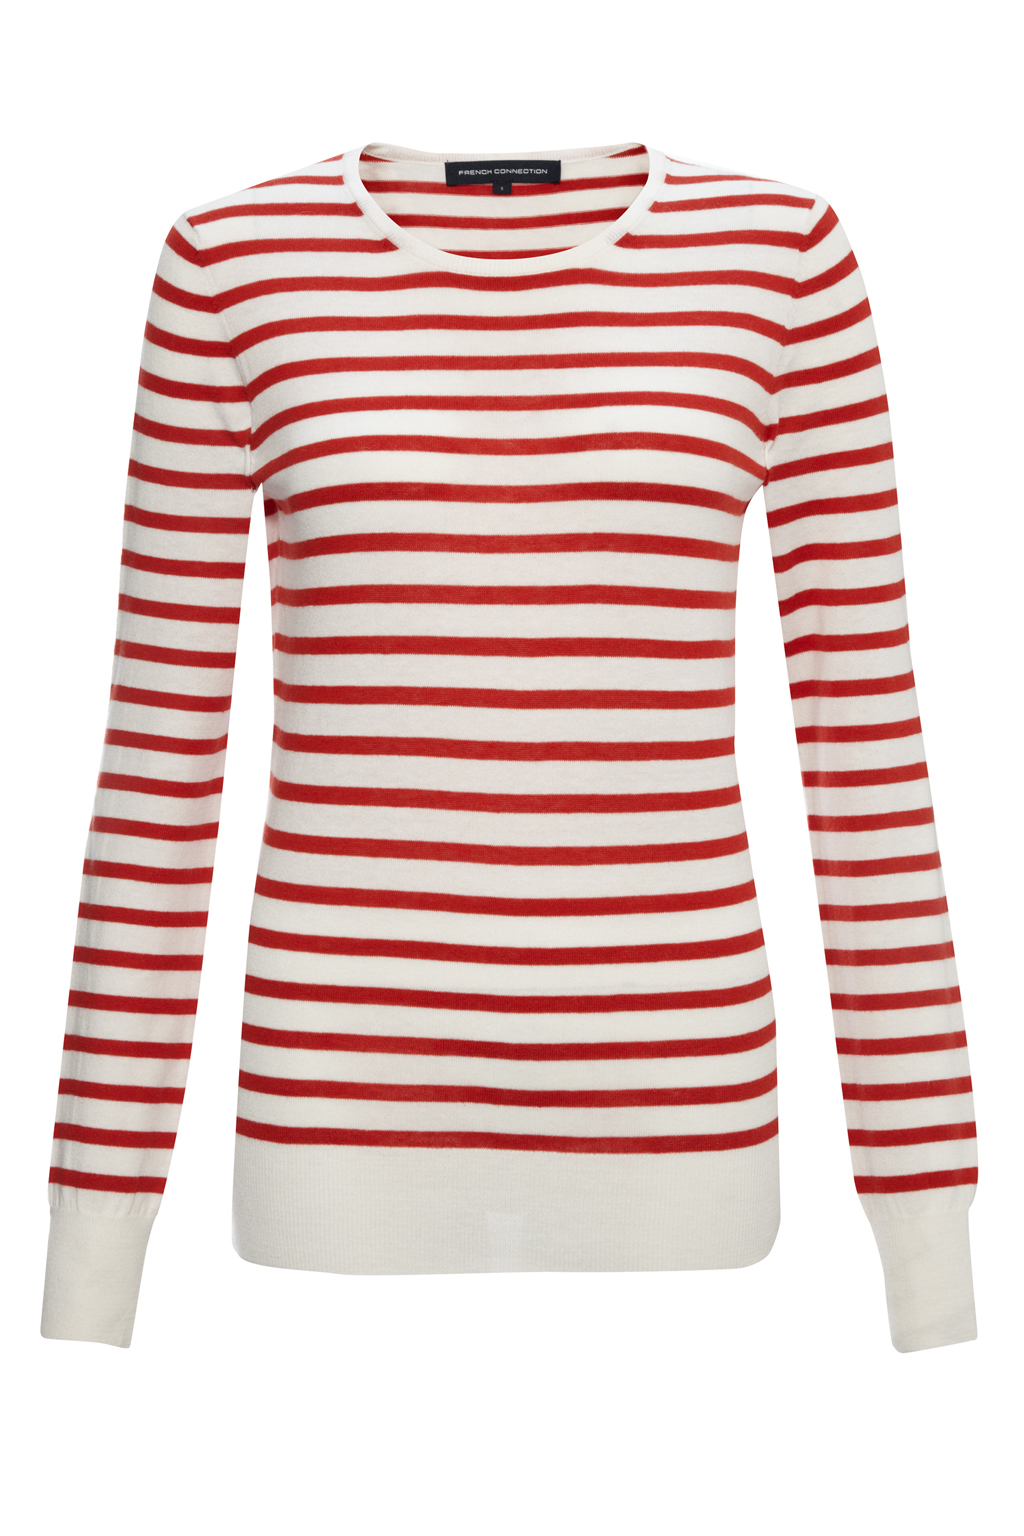 New-French-Connection-Long-Sleeve-Knits-Jumper-Pink-White